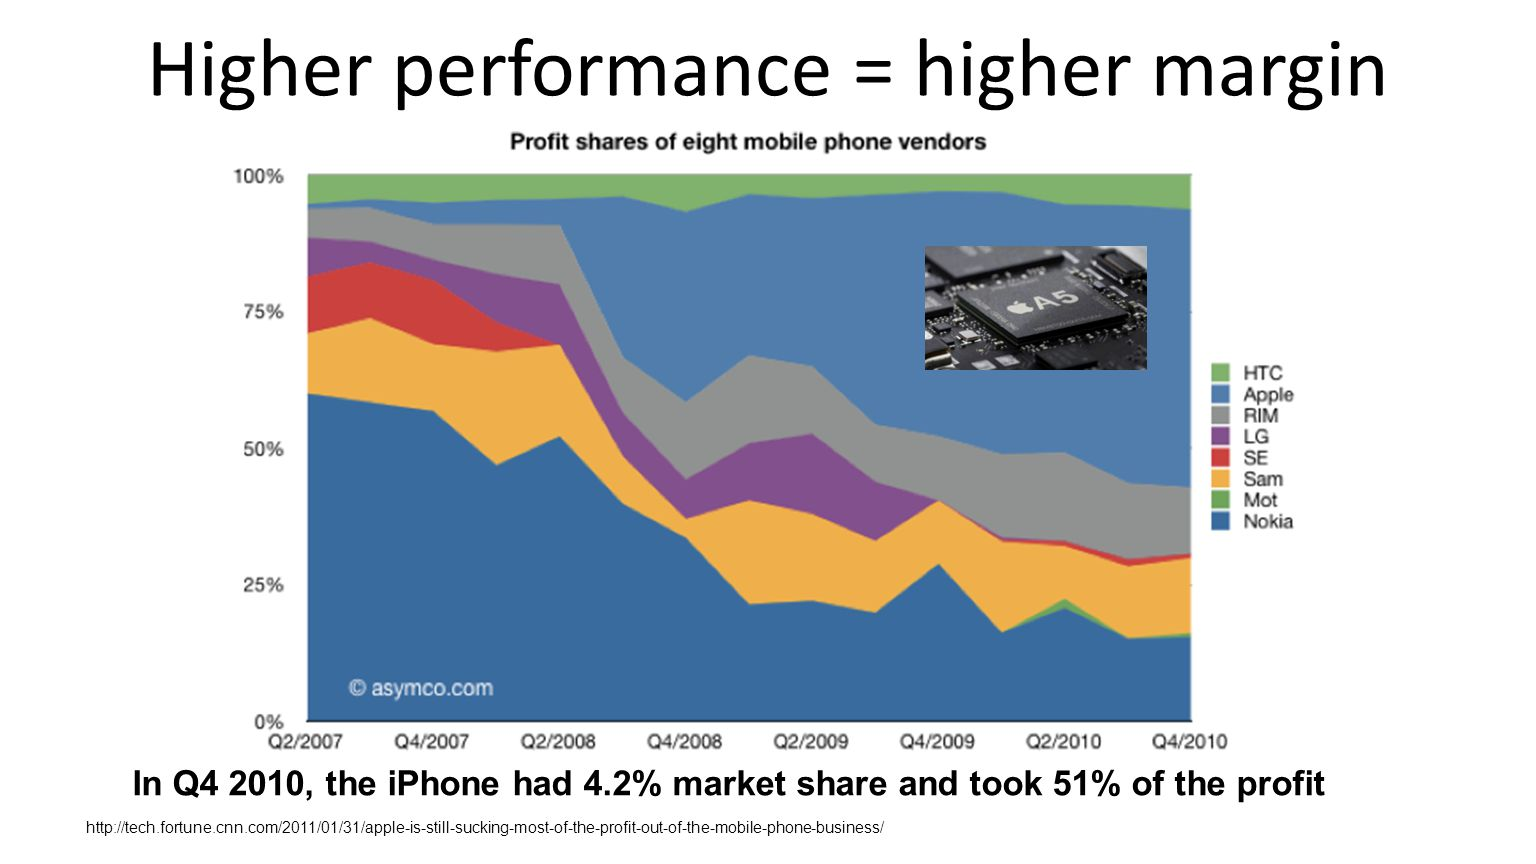 Higher performance = higher margin In Q4 2010, the iPhone had 4.2% market share and took 51% of the profit http://tech.fortune.cnn.com/2011/01/31/apple-is-still-sucking-most-of-the-profit-out-of-the-mobile-phone-business/